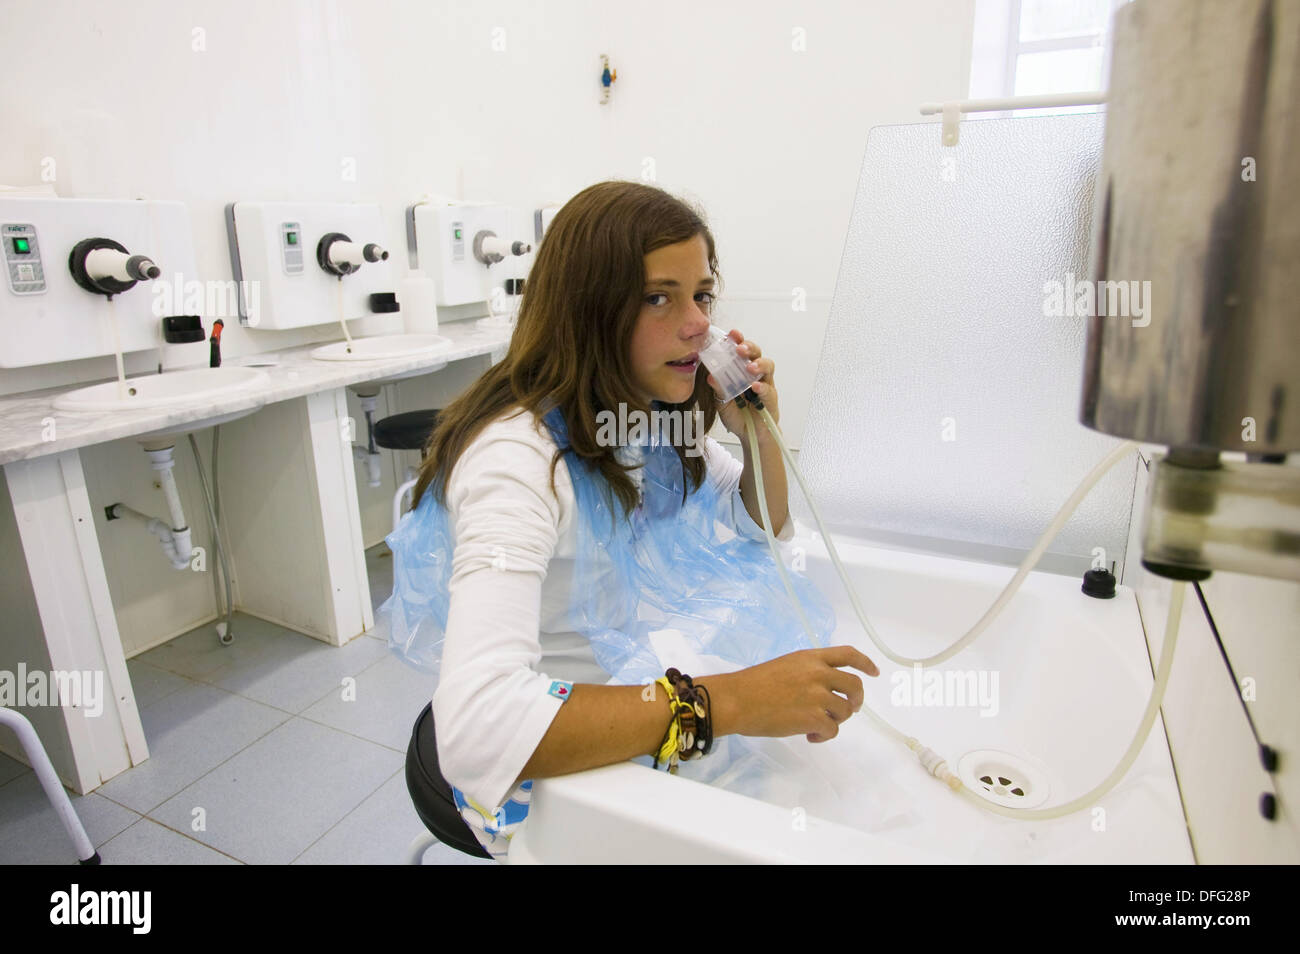 Respiratory inhaler in spa, Lierganes. Pas-Miera, Cantabria, Spain - Stock Image